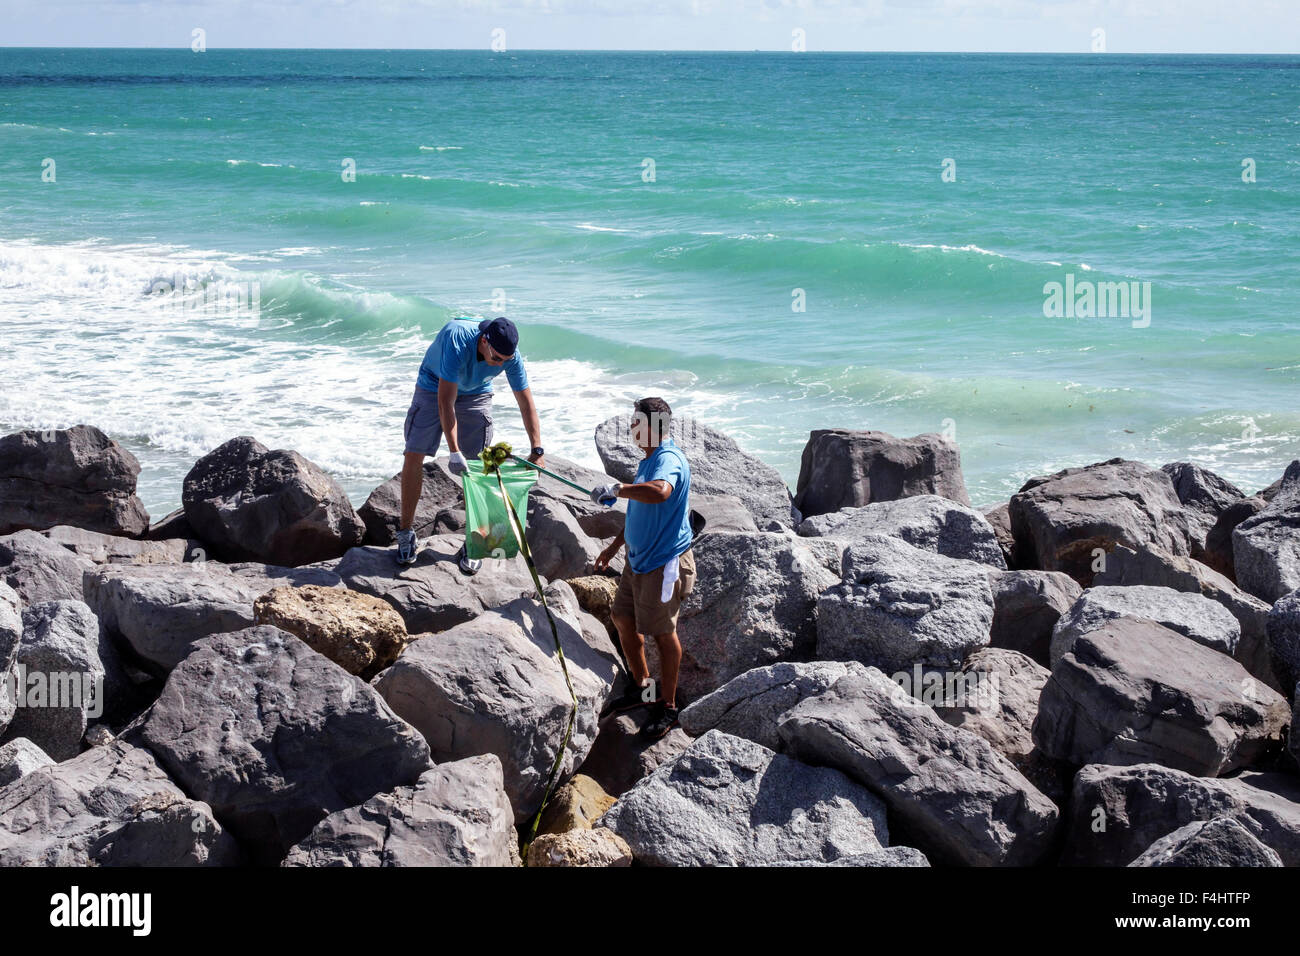 Miami Beach Florida clean-up cleanup clean up volunteer man Hispanic collecting trash litter community service Impact - Stock Image